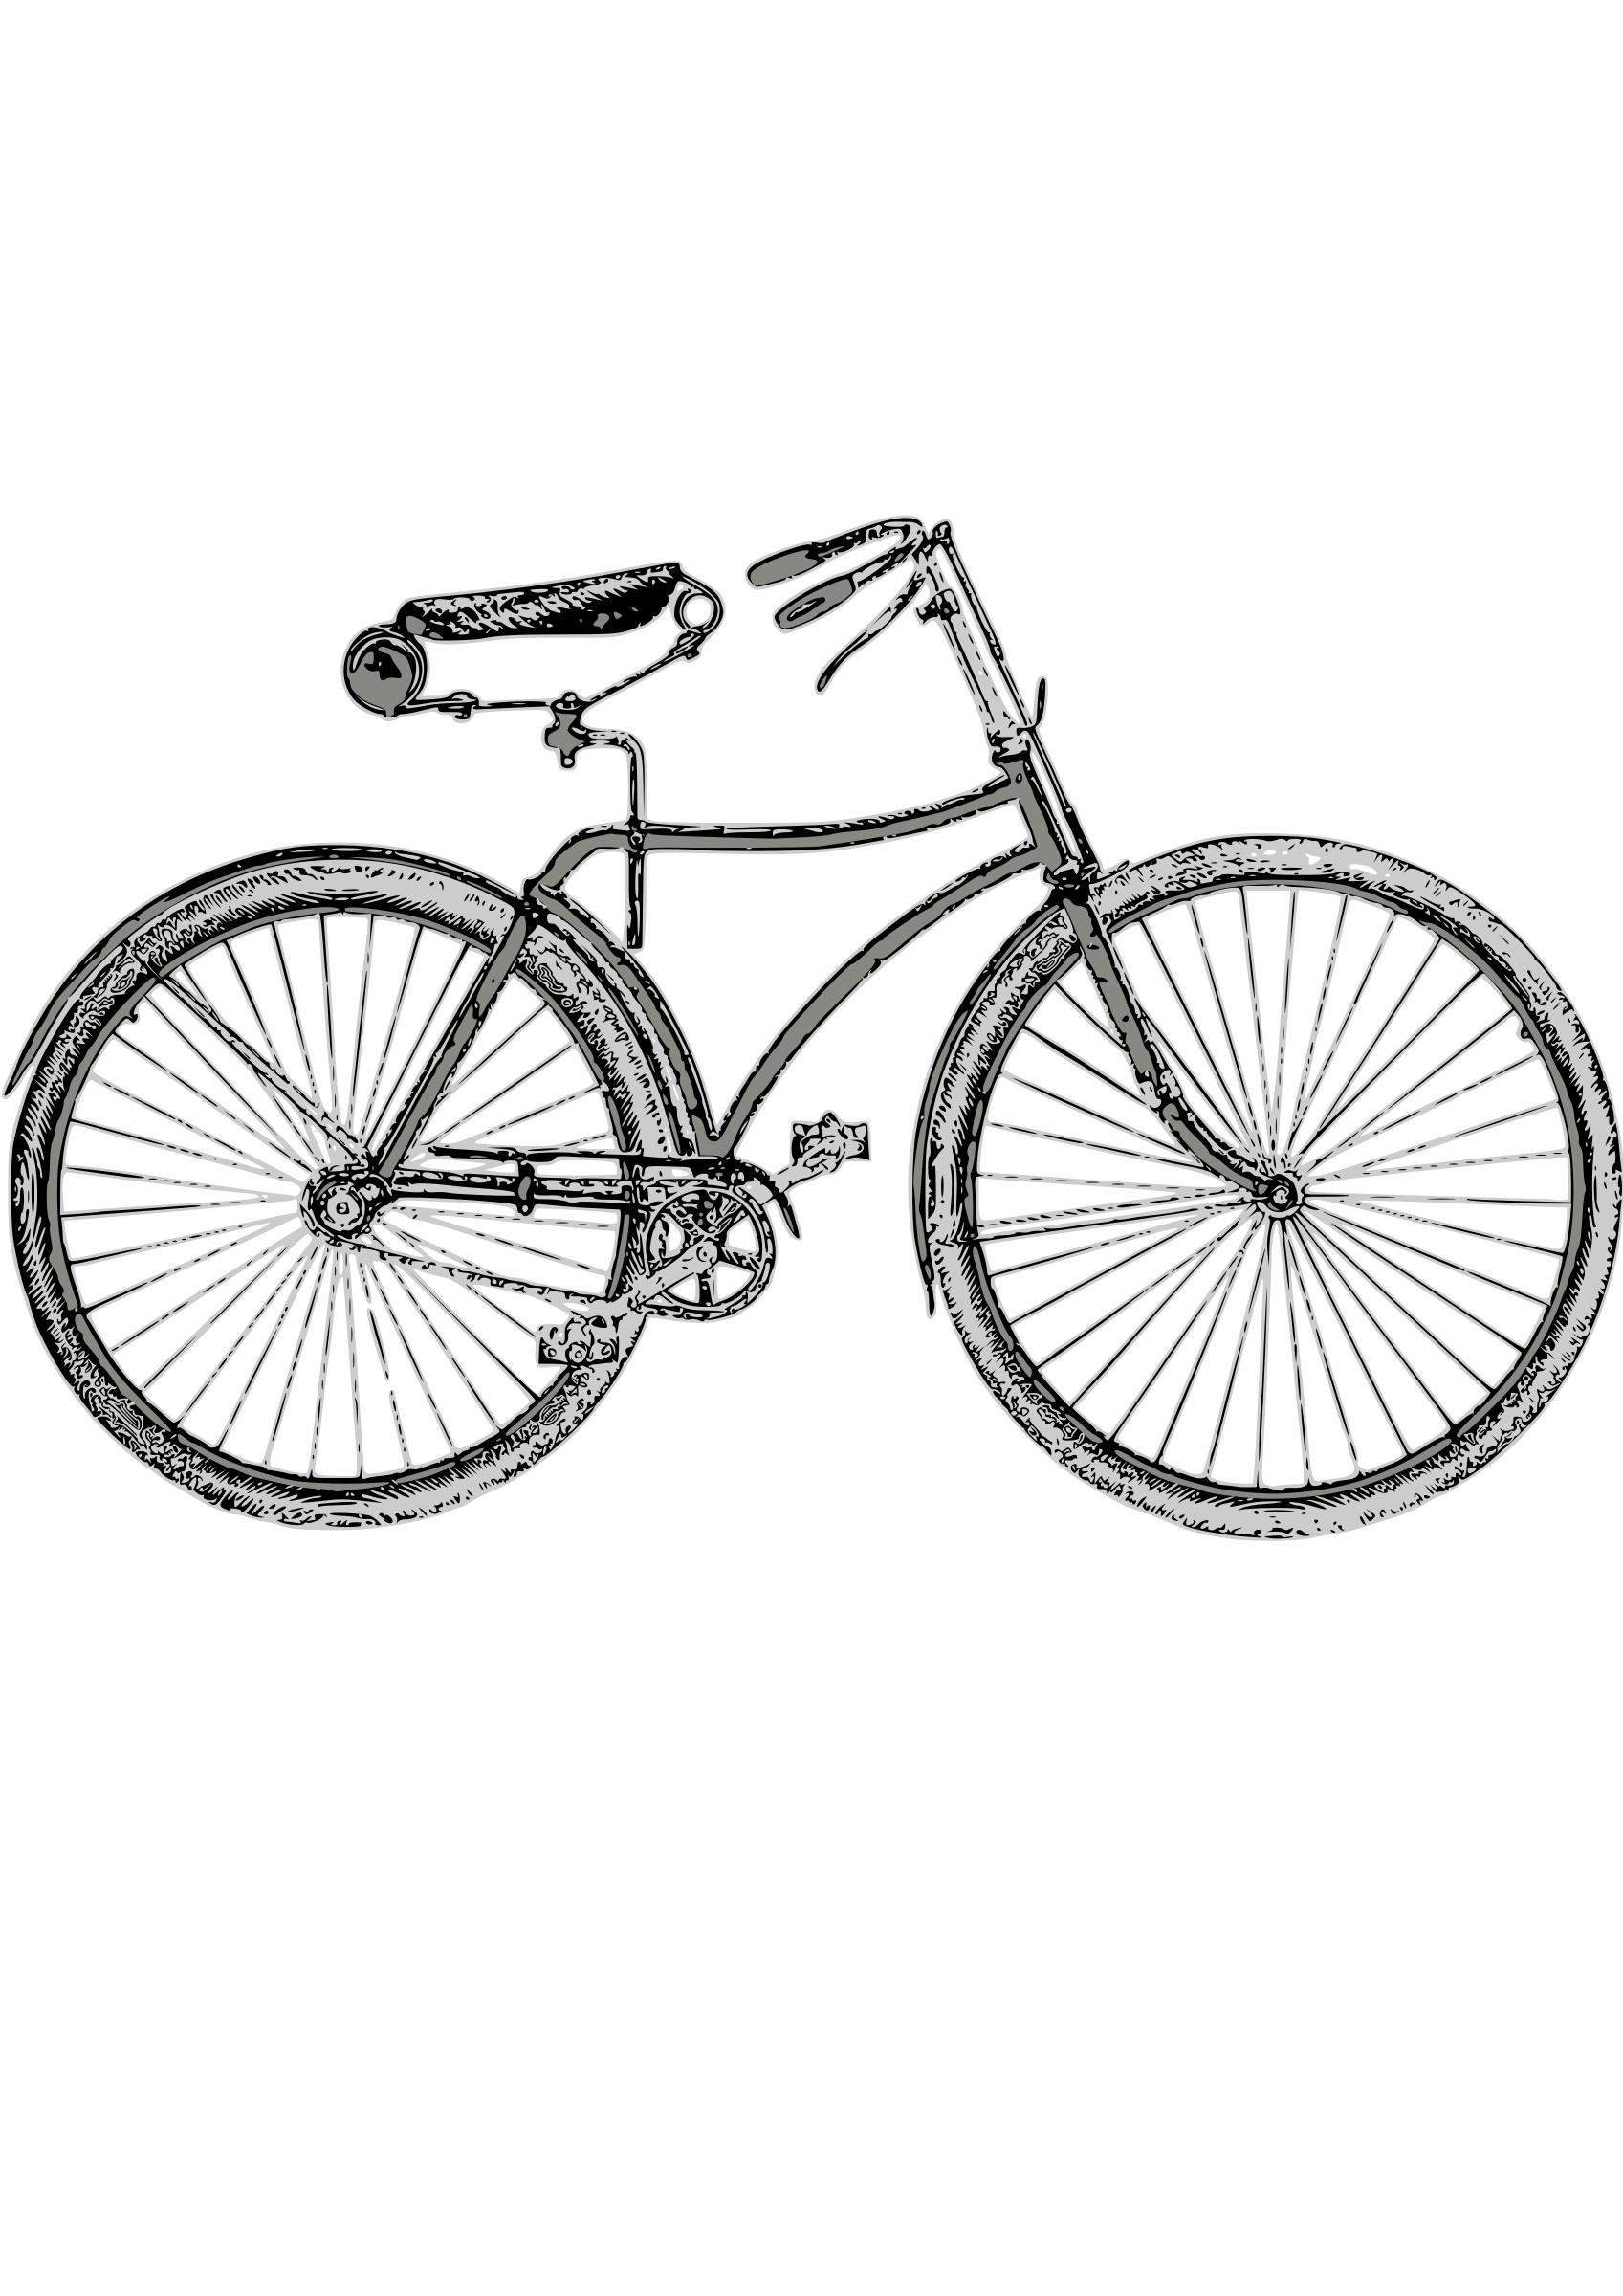 Clipart bike classic. Vintage drawing at getdrawings